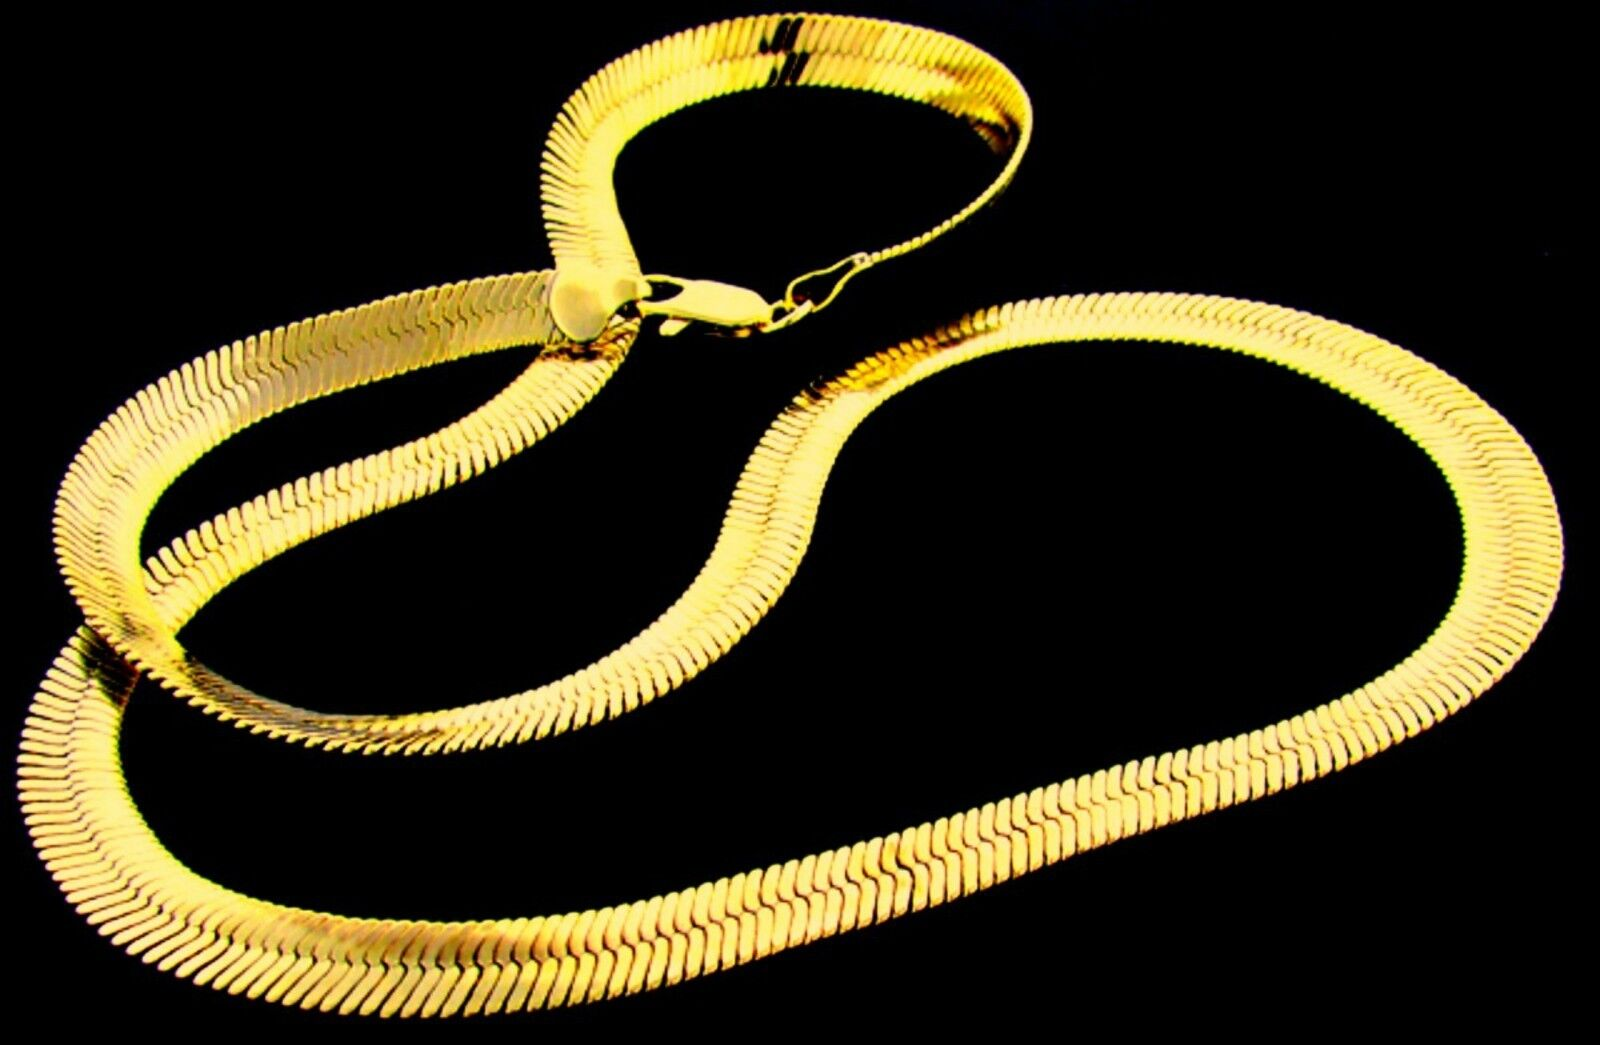 NEW PVD BONDED 18k GOLD Men's & Woman's 6½mm HERRINGBONE CHAIN Necklace -4 SIZES